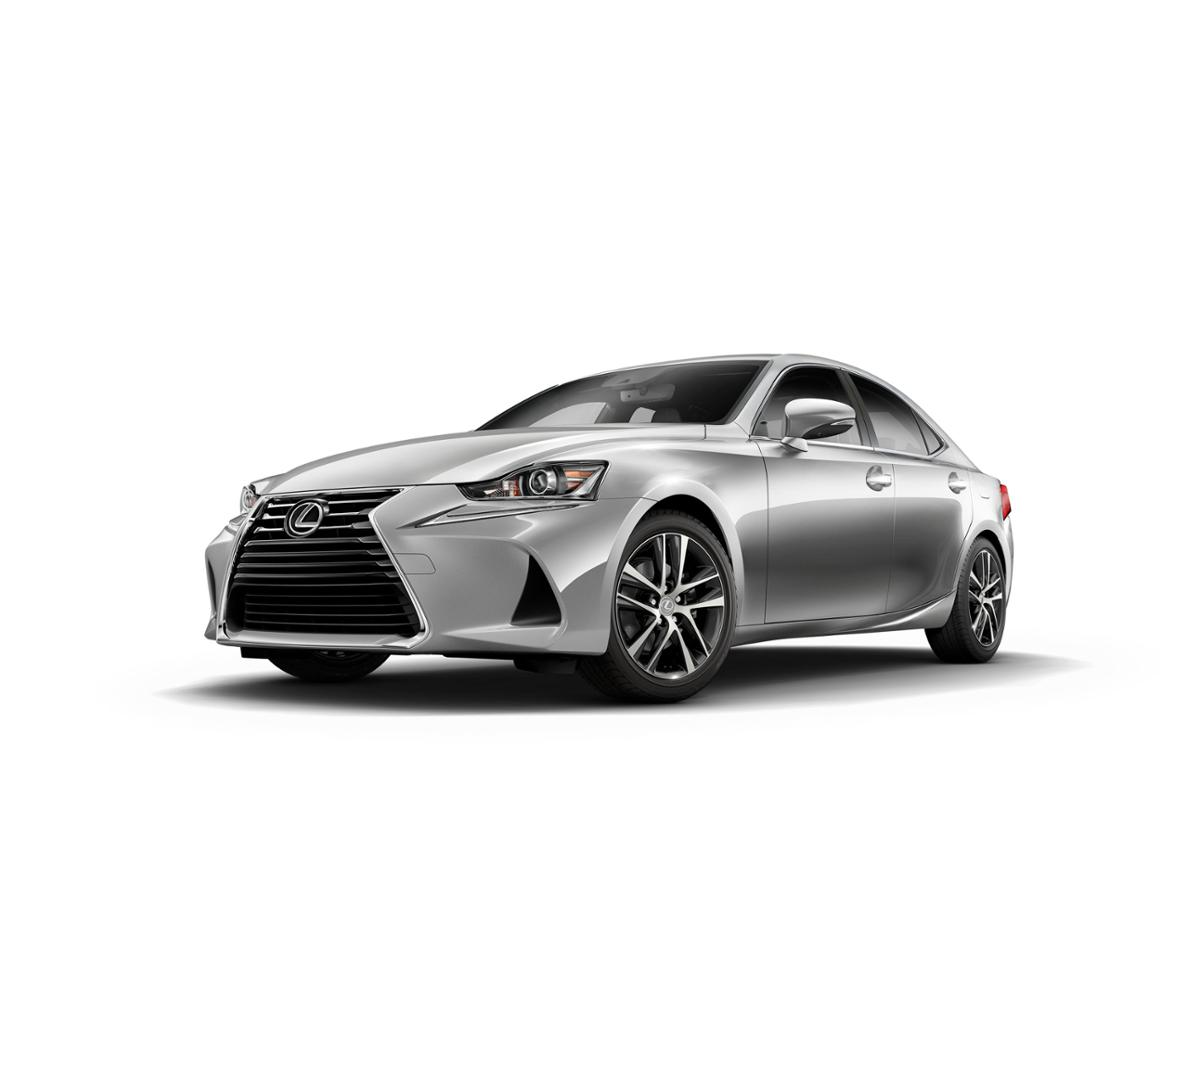 2018 Lexus IS 300 Vehicle Photo in El Monte, CA 91731